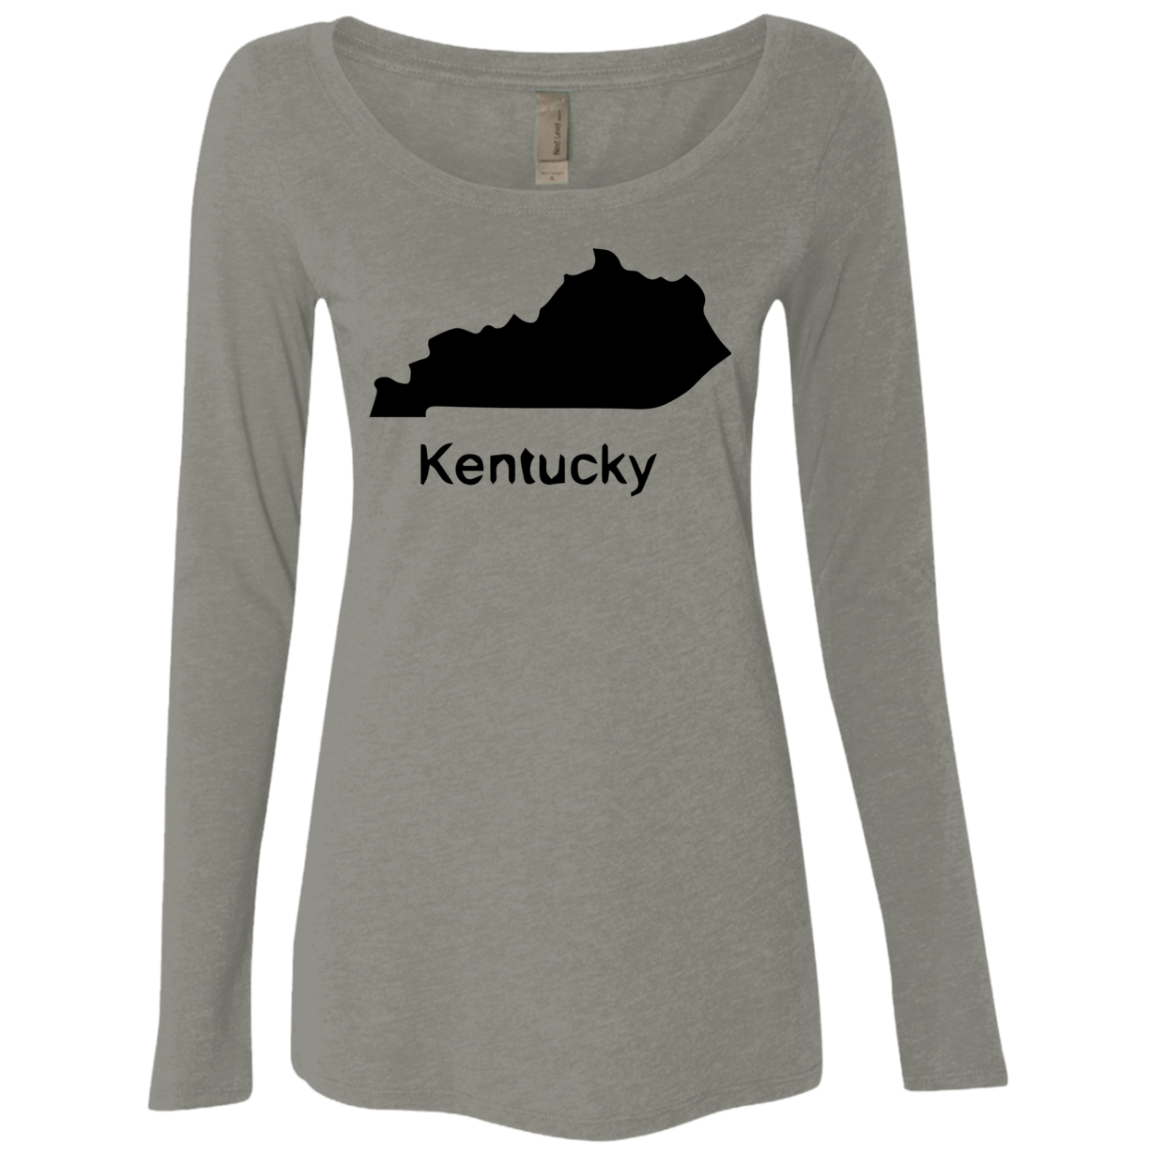 Kentucky Black Women's Long Sleeve Tee